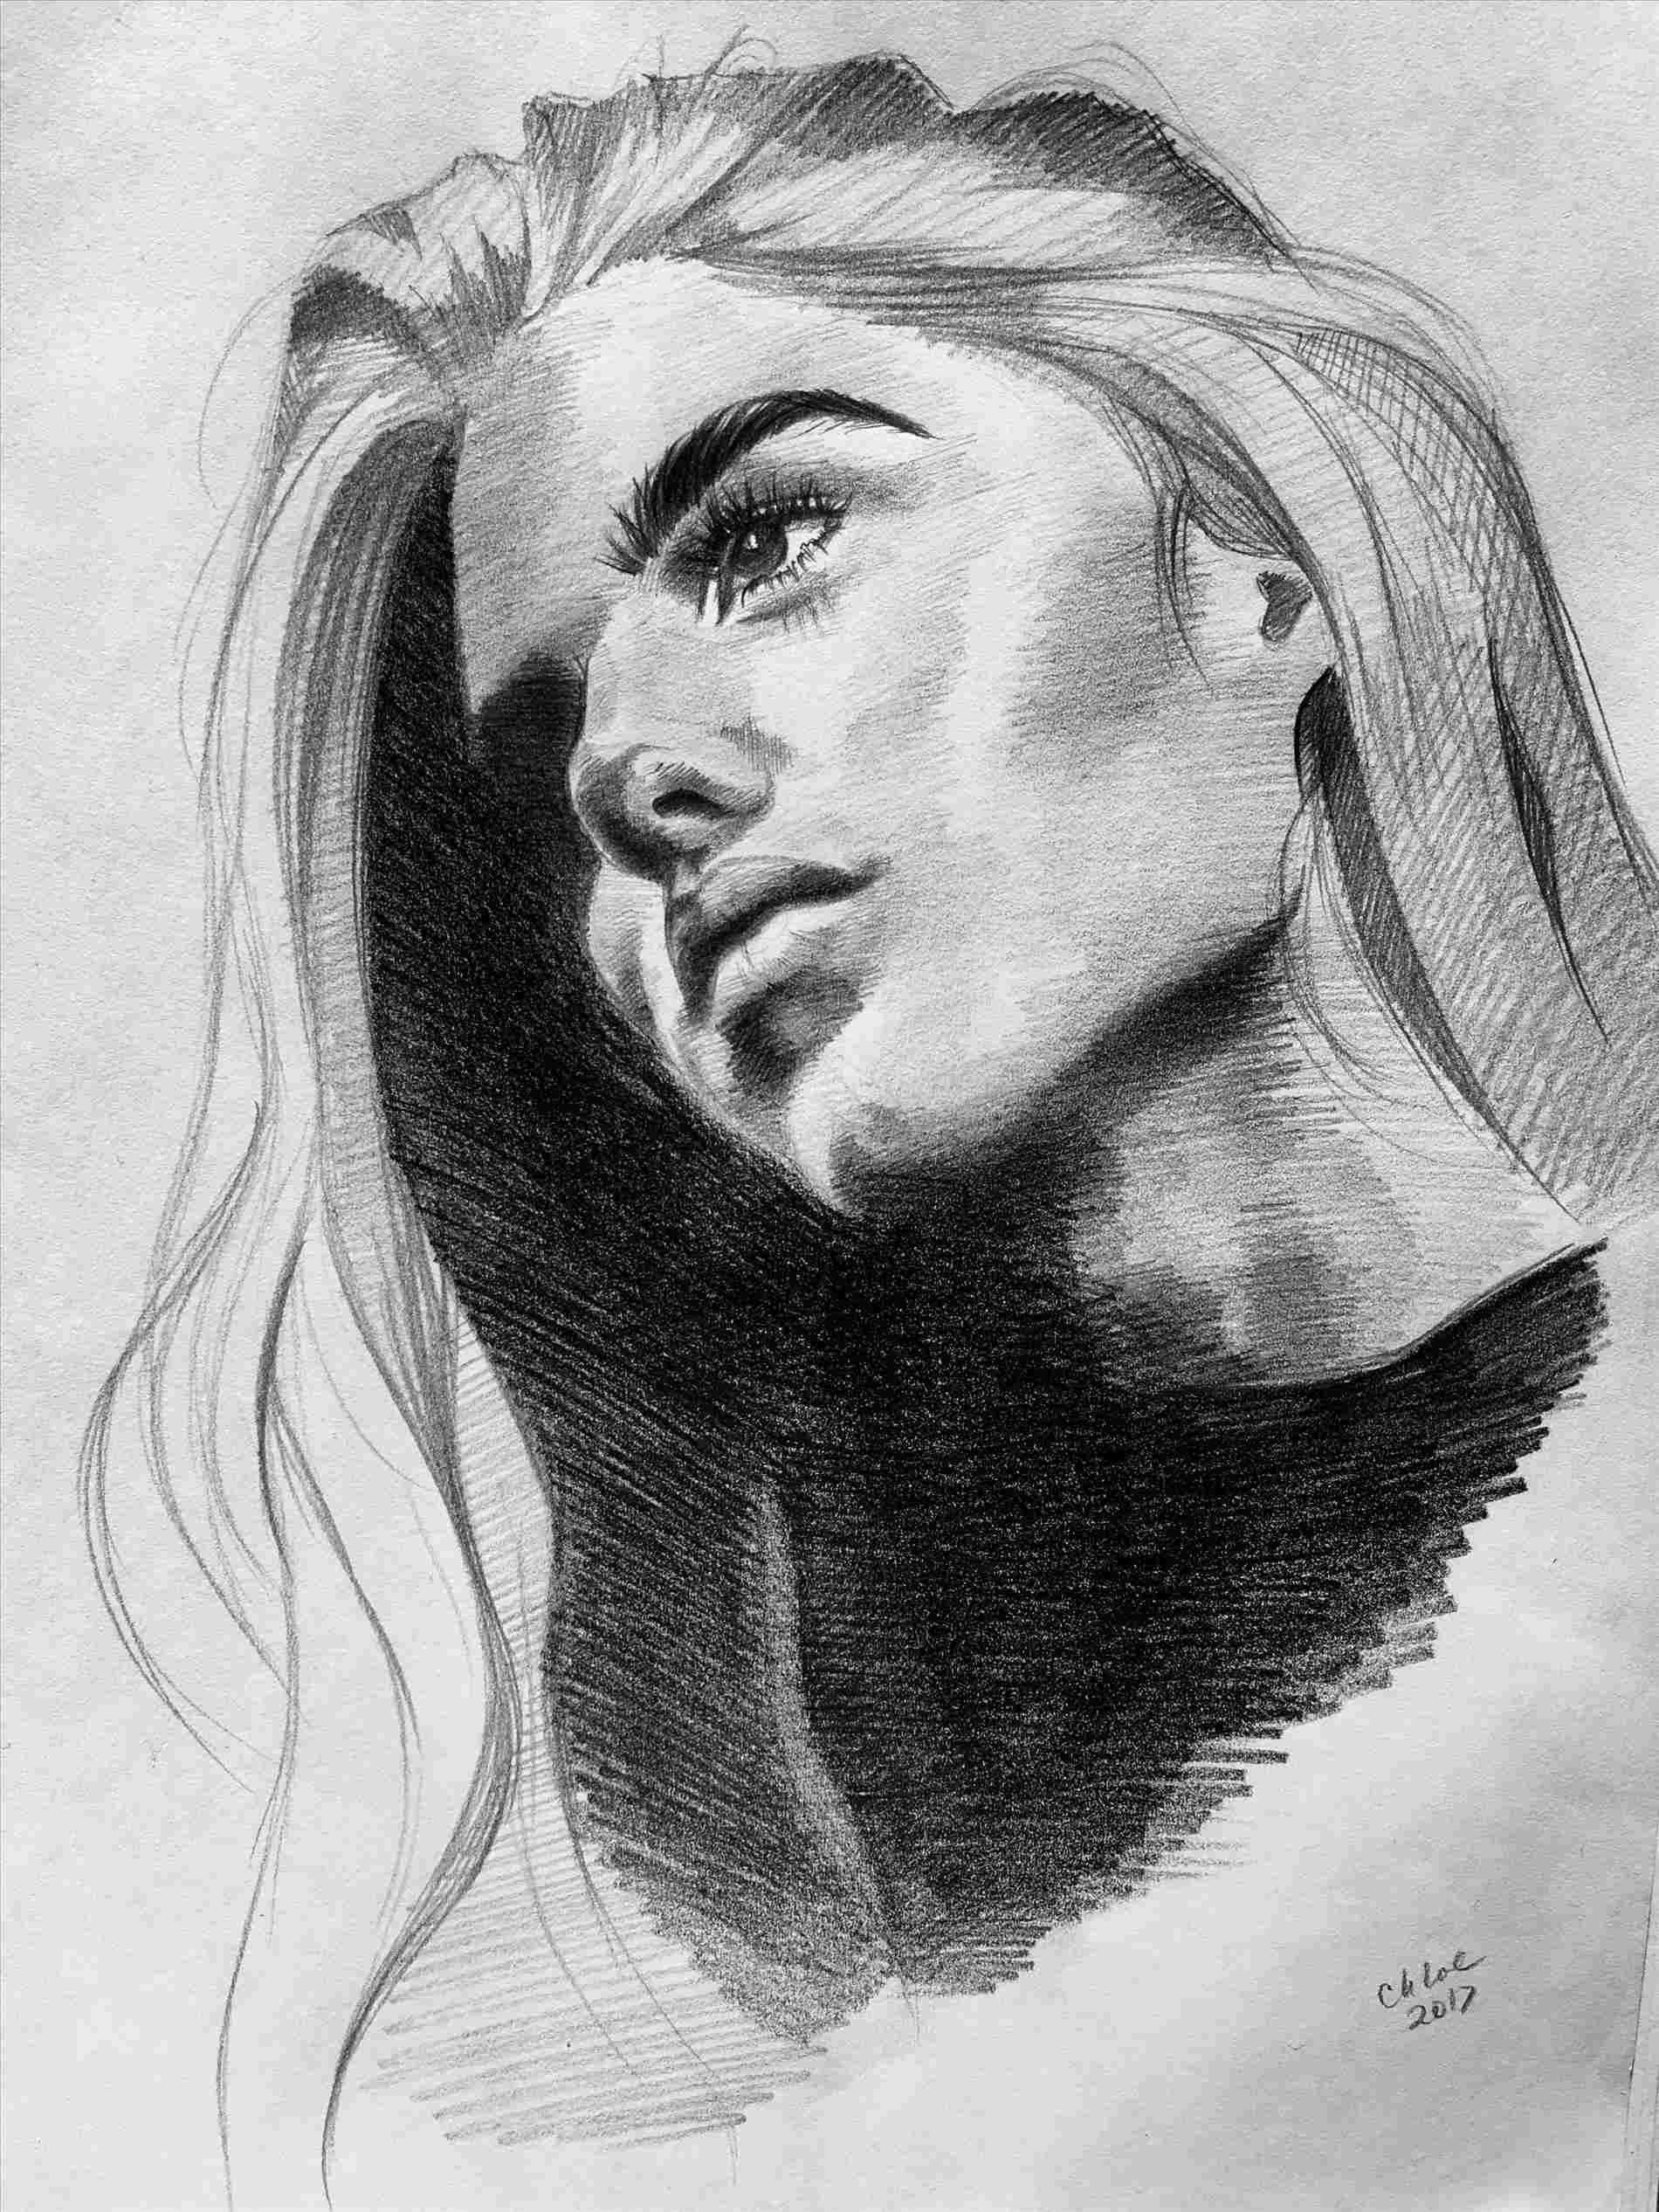 easy-charcoal-drawing-ideas-life-s ... | Easy charcoal ...